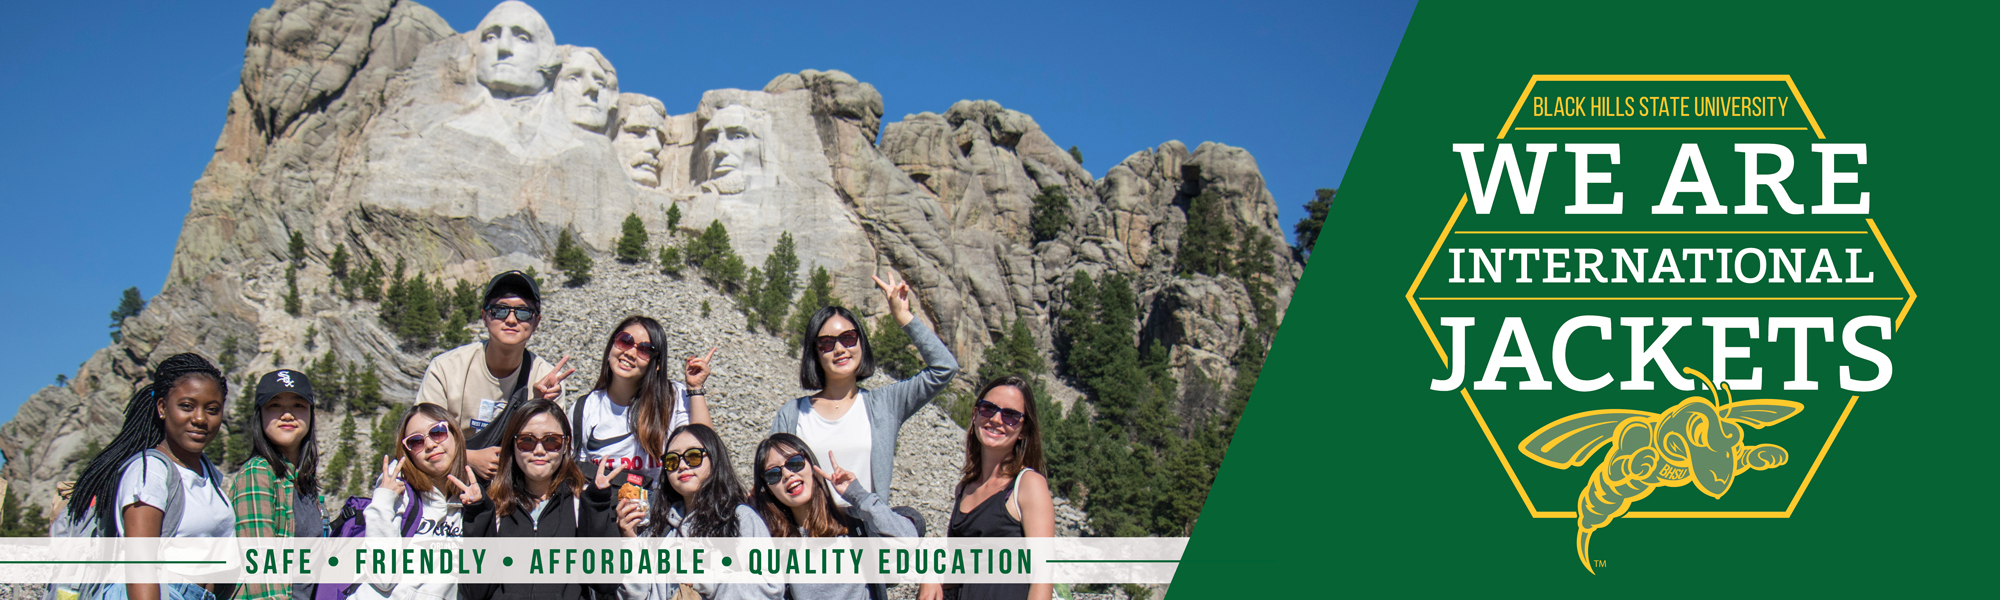 Explore what Black Hills State University has to offer for Education Degrees.